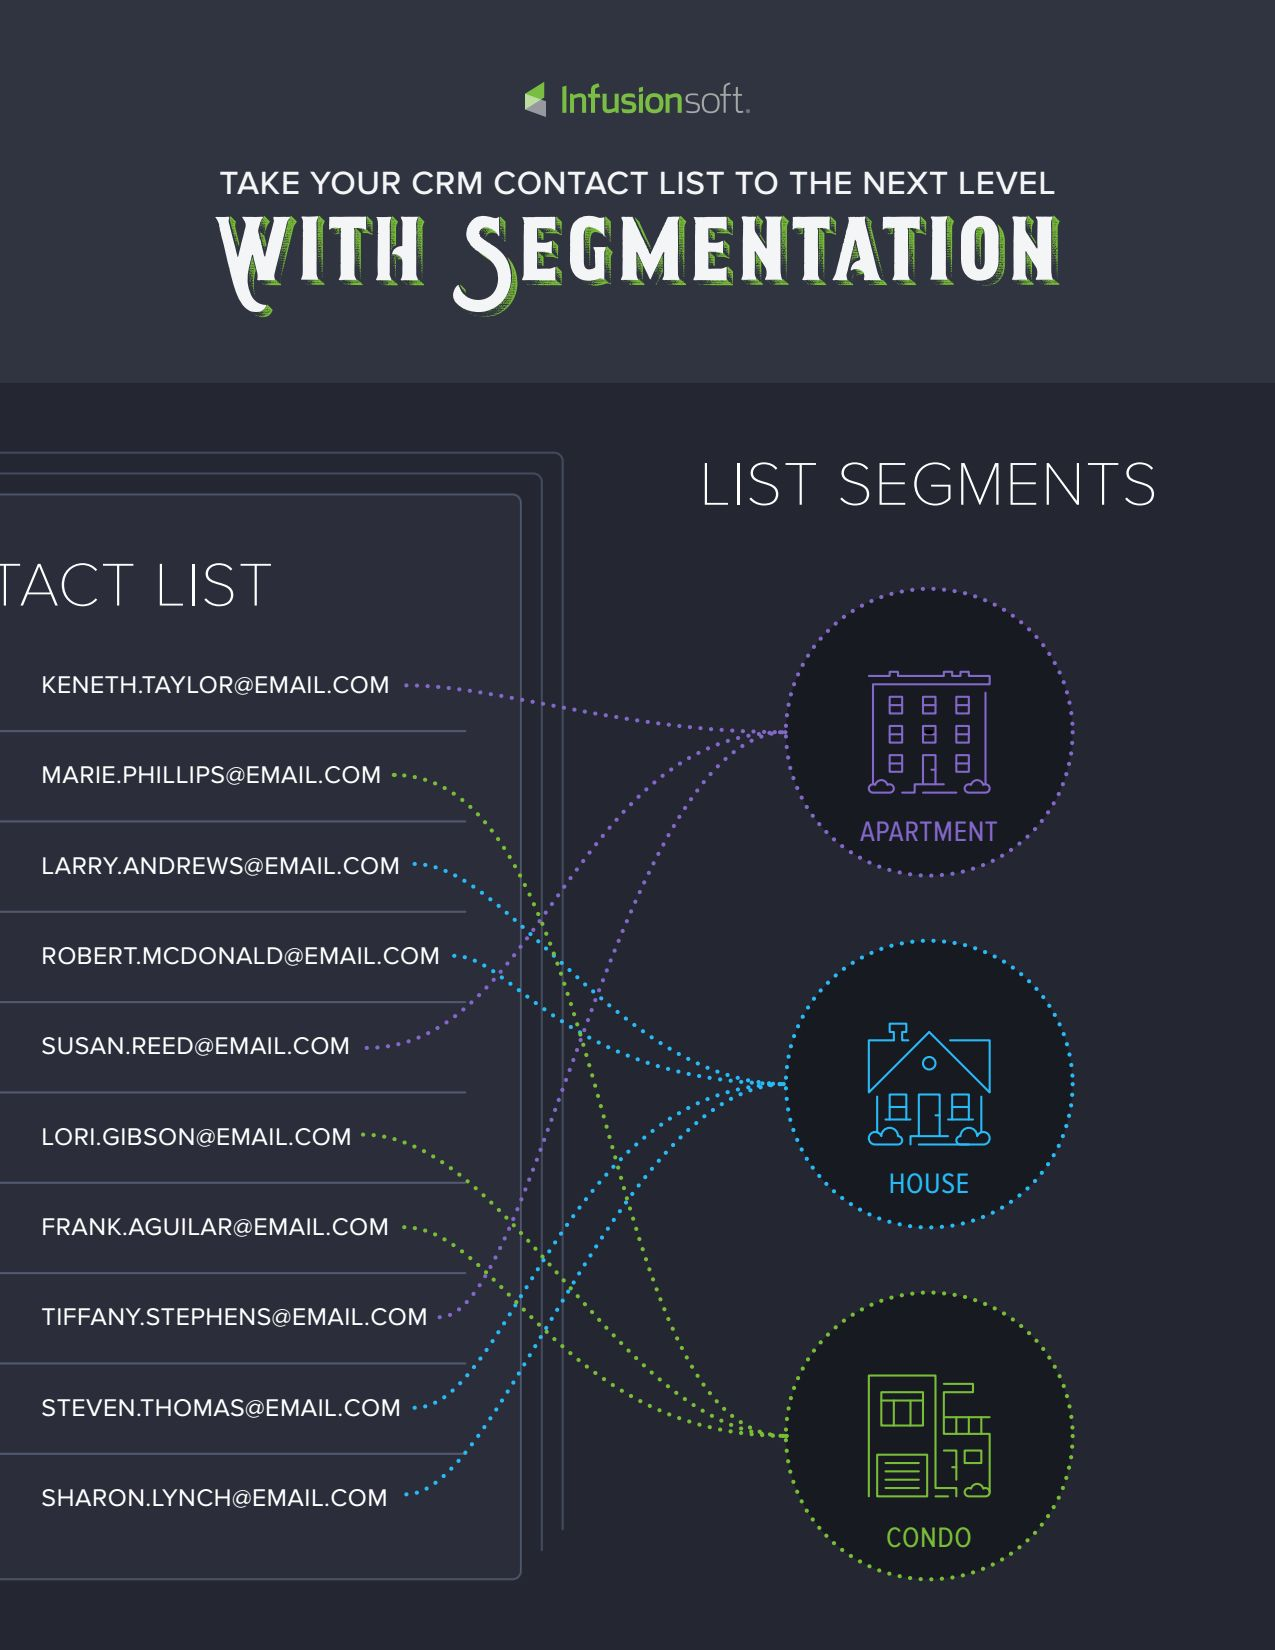 Want to know the key to personalization? Segmentation.